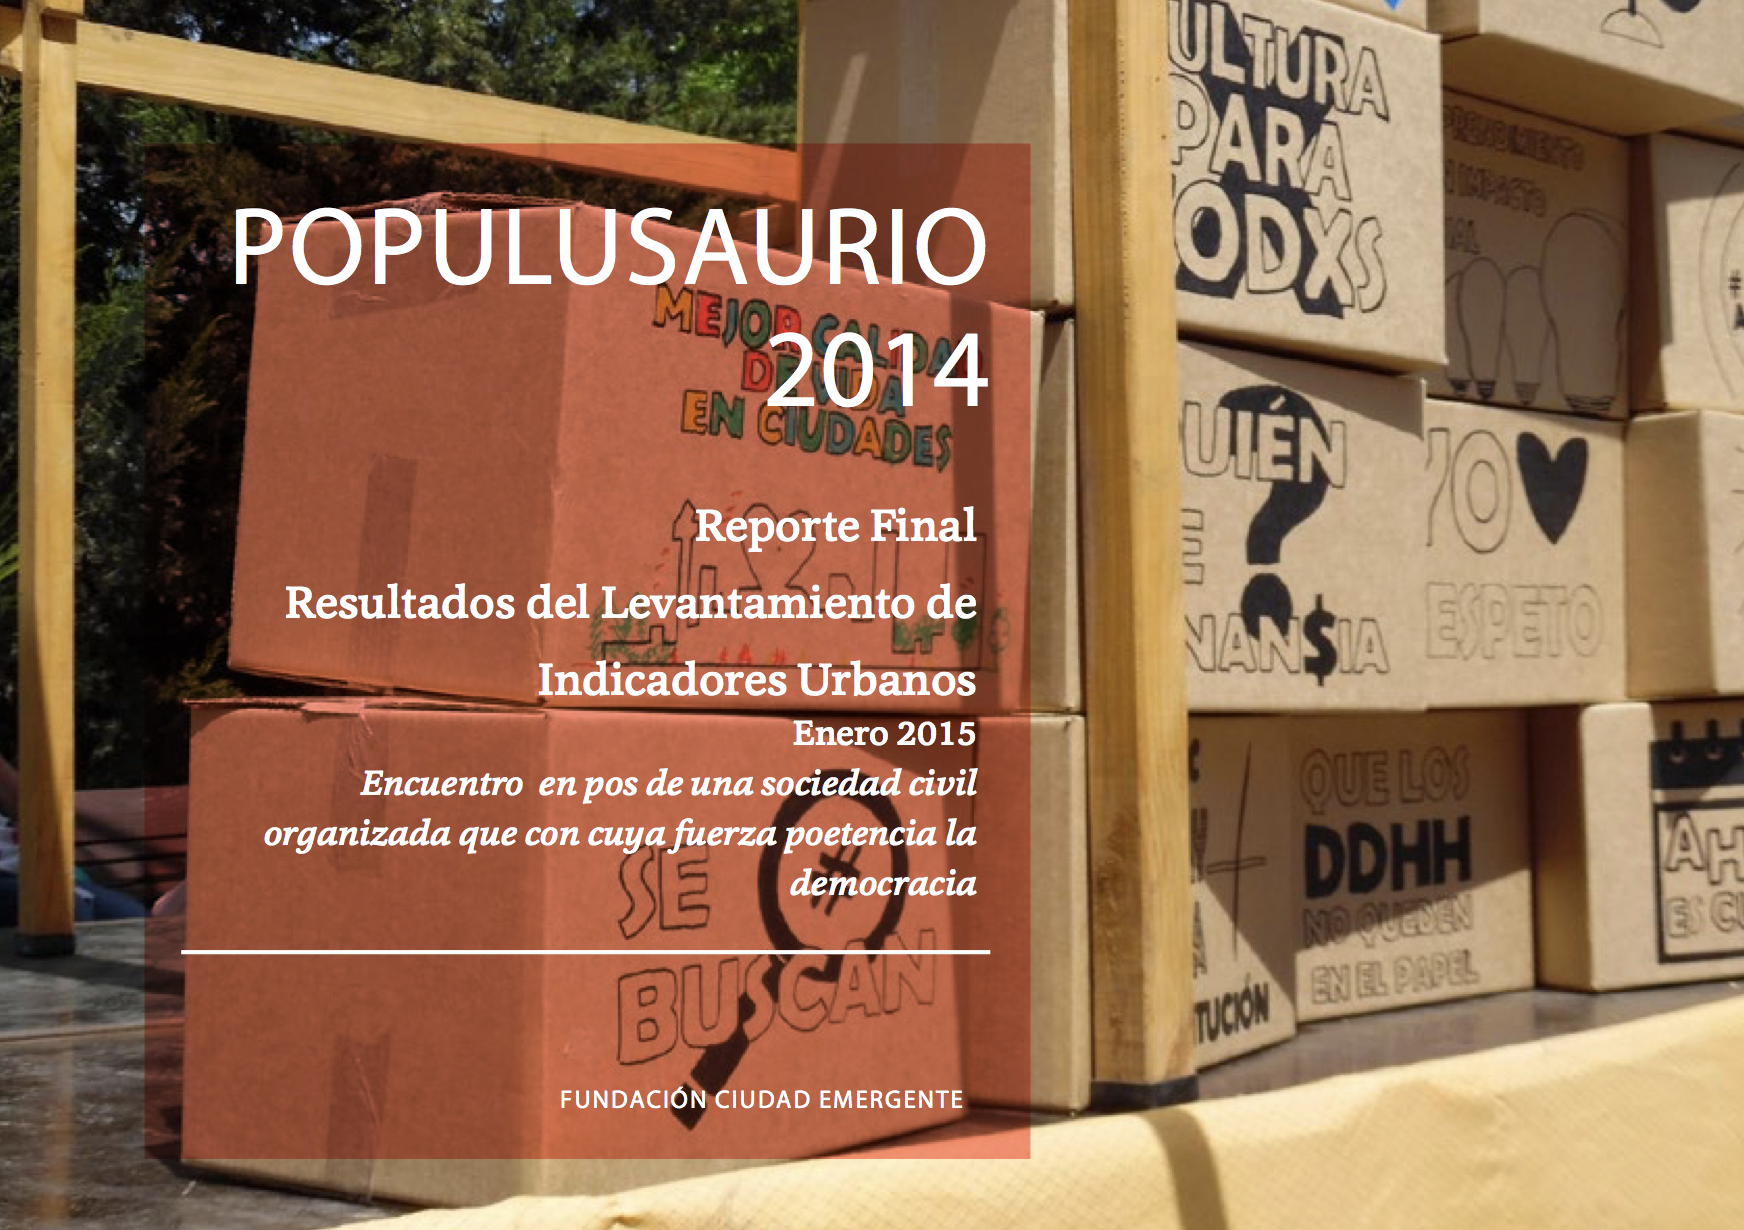 Populusaurio 2014.png